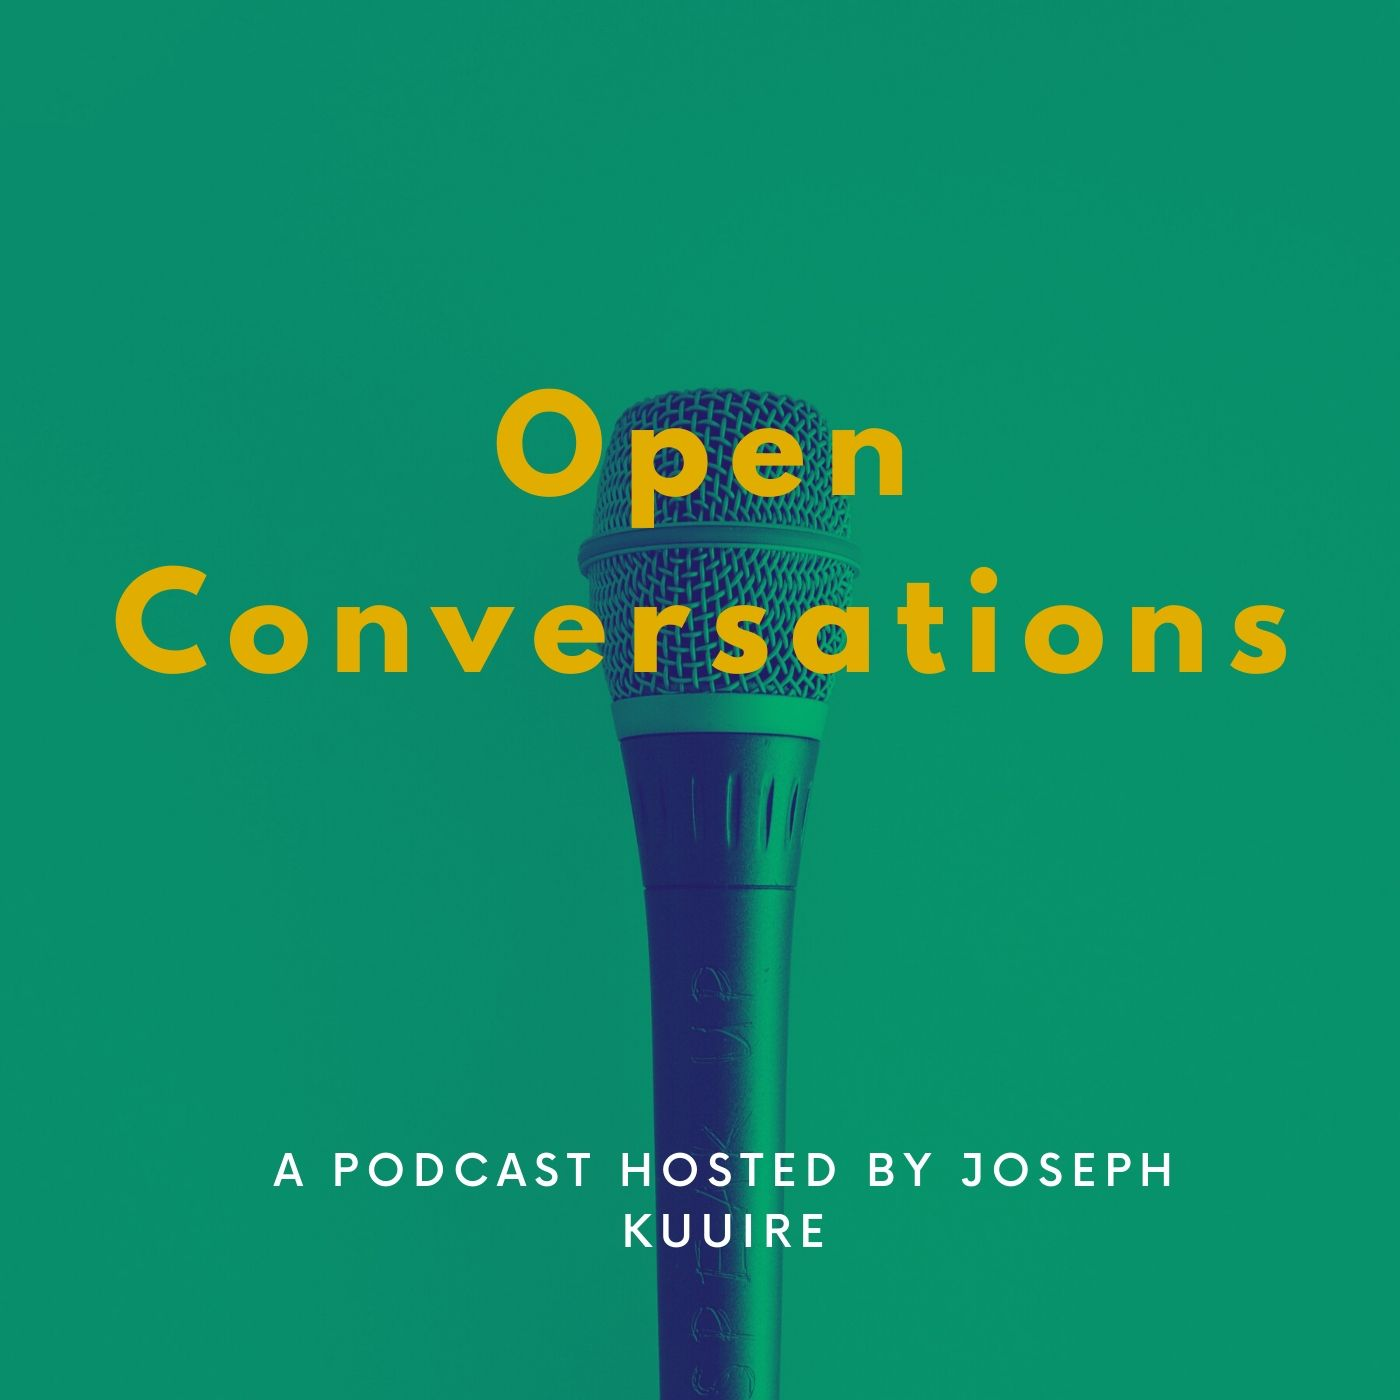 A picture of the open conversations podcast cover with a microphone in the center and a green background